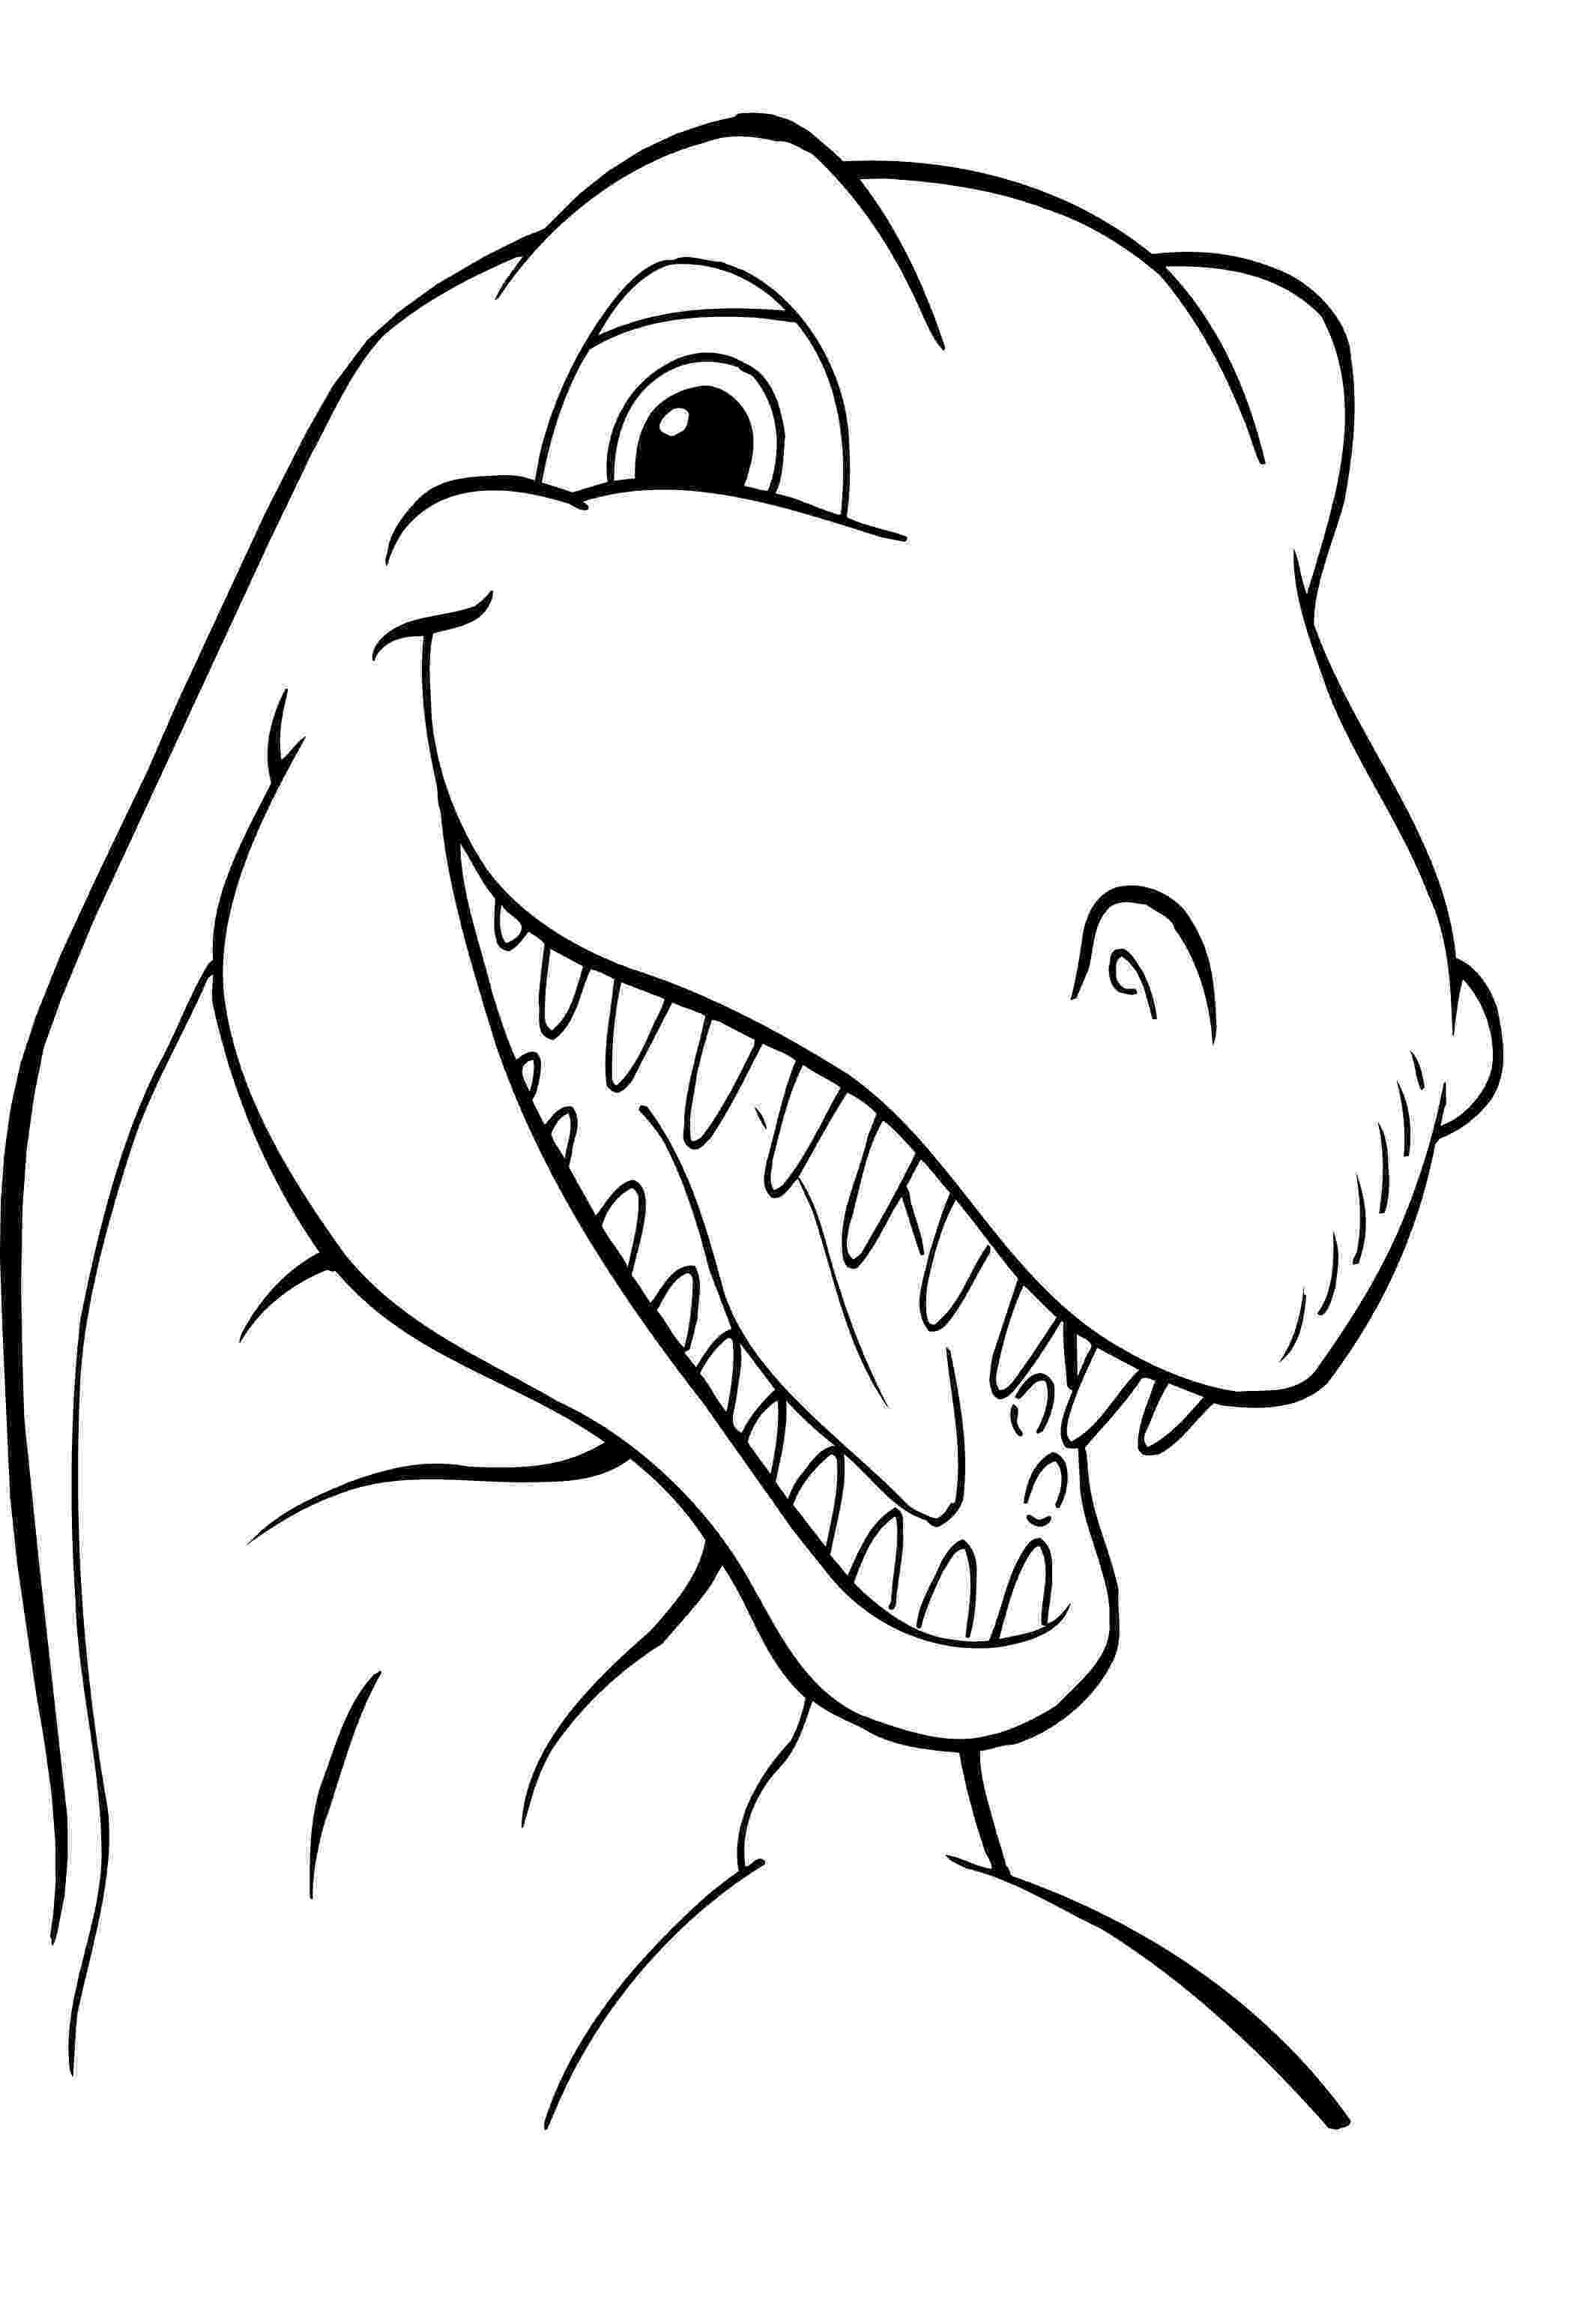 colouring dinosaur free printable dinosaur coloring pages for kids colouring dinosaur 1 1